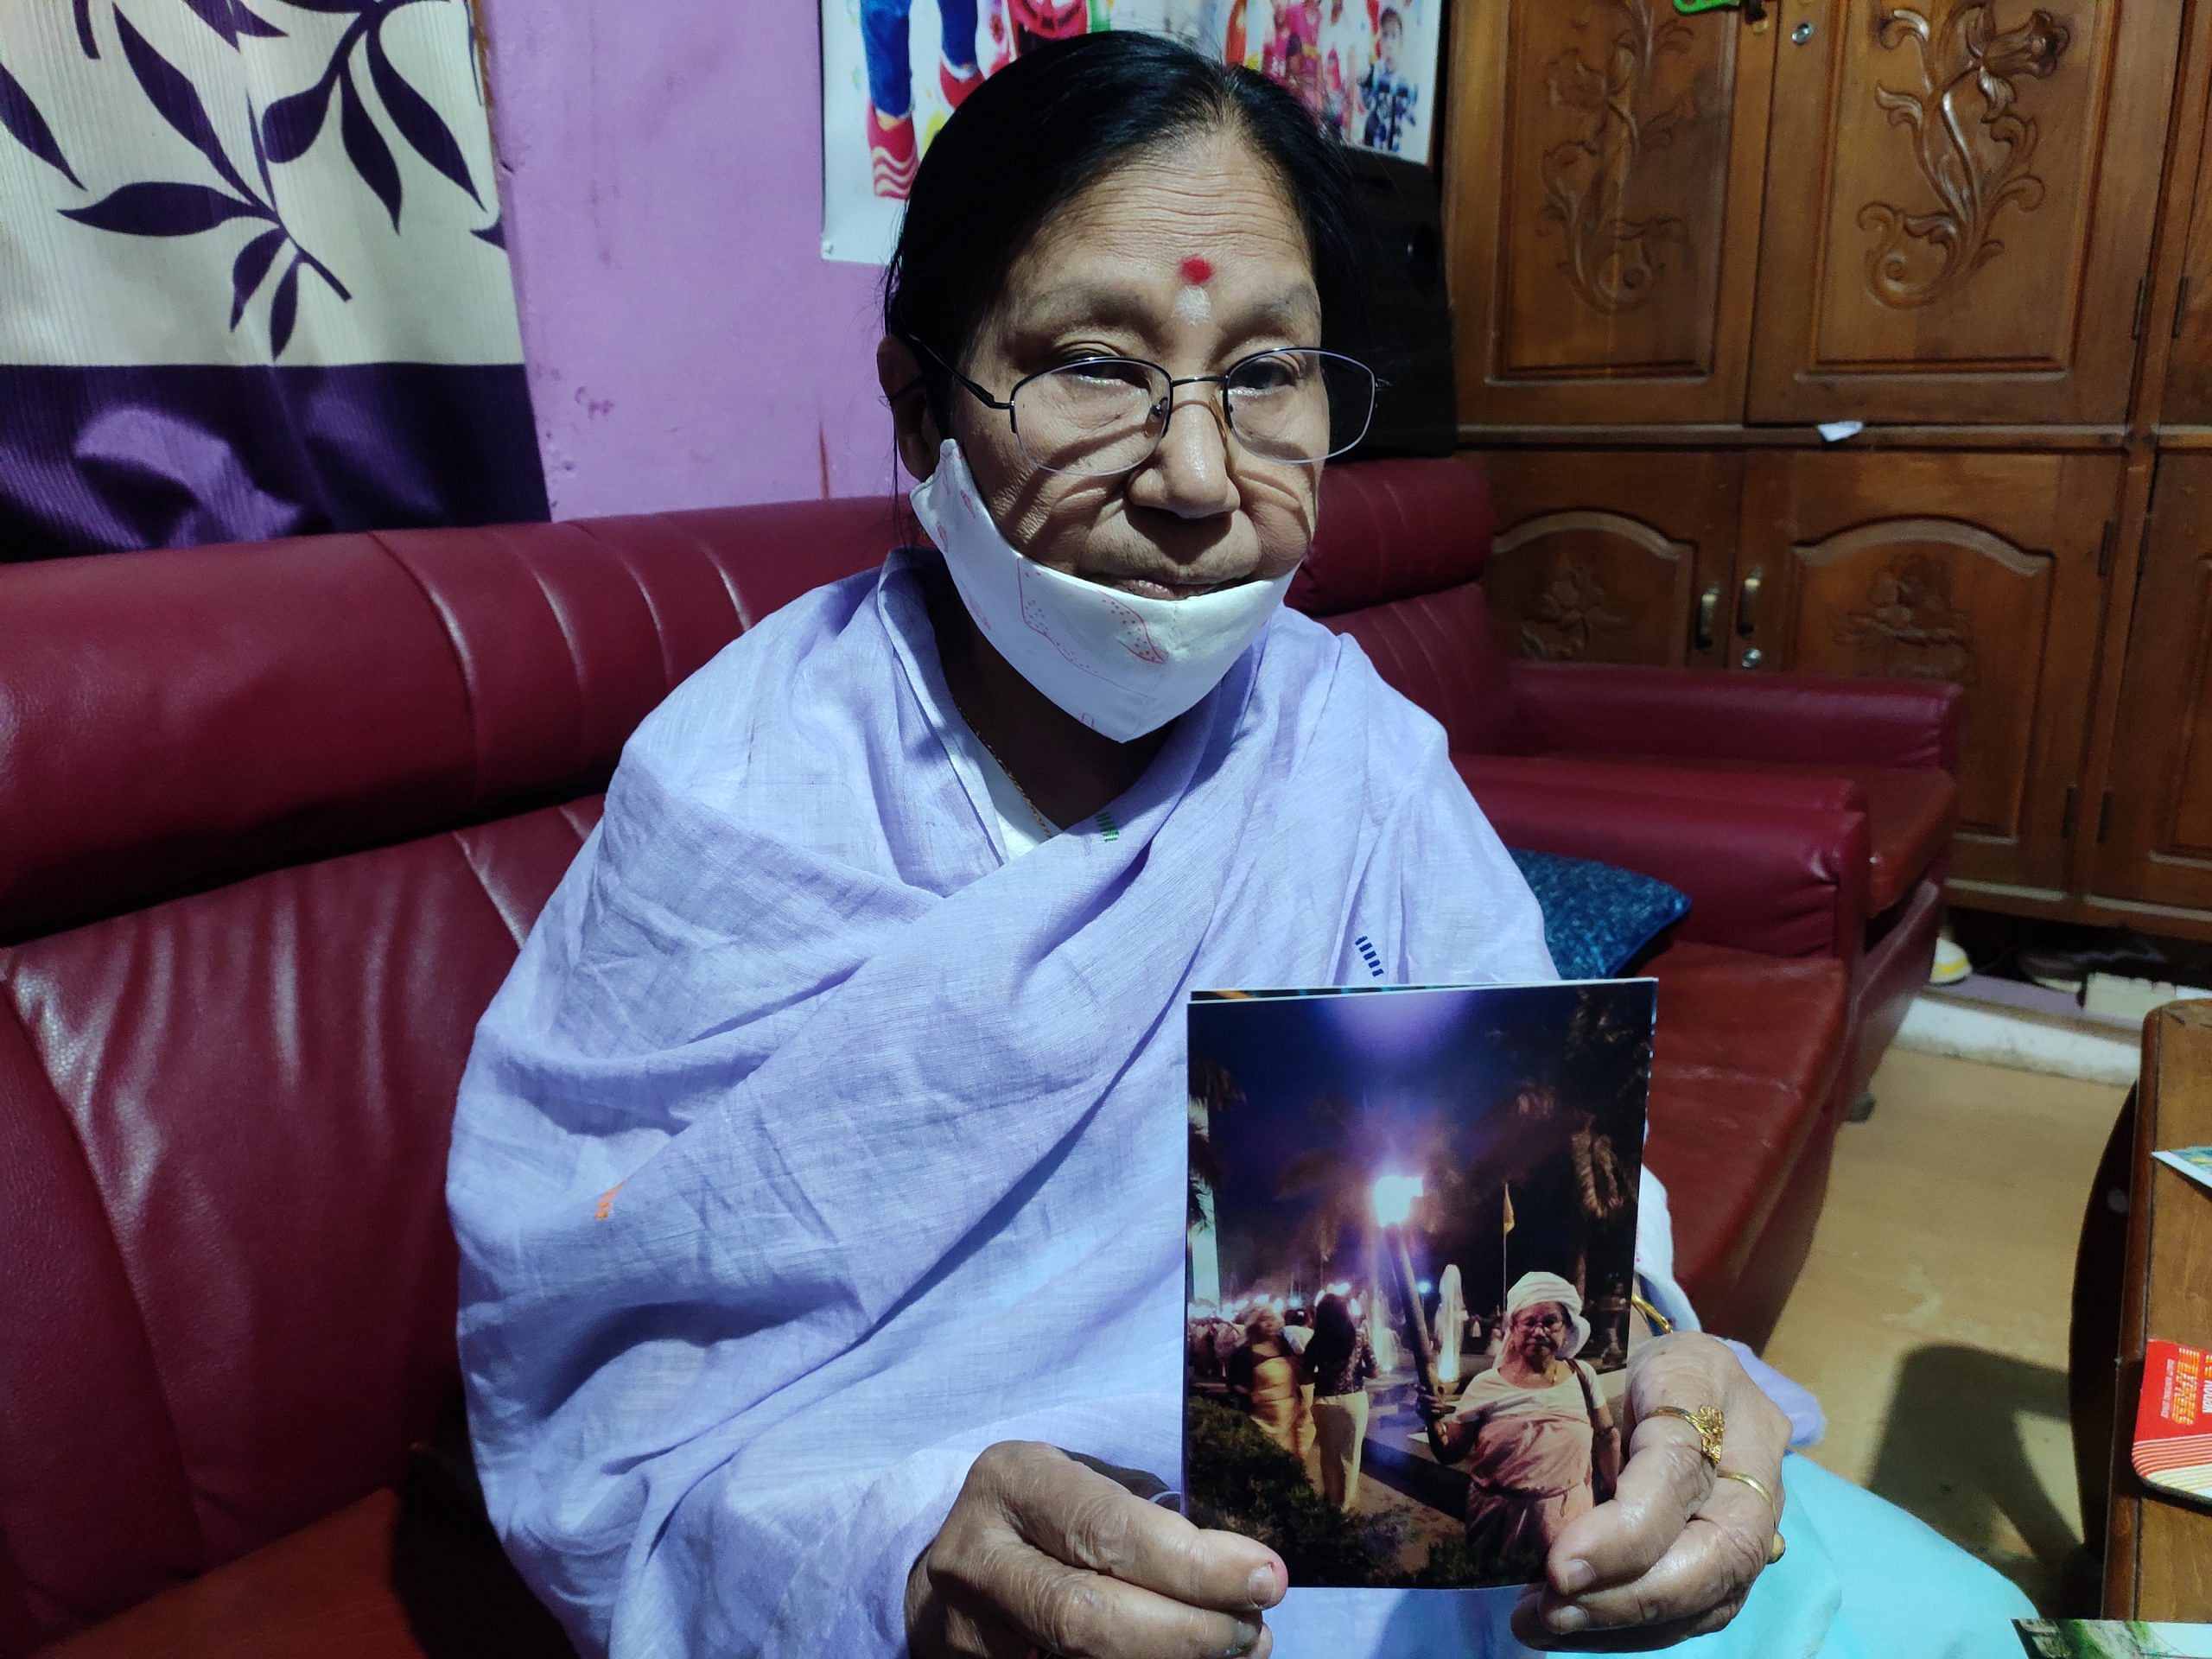 Ima Gyaneshwori holds a picture of herself protesting in the early 2000s   Simrin Sirur   ThePrint